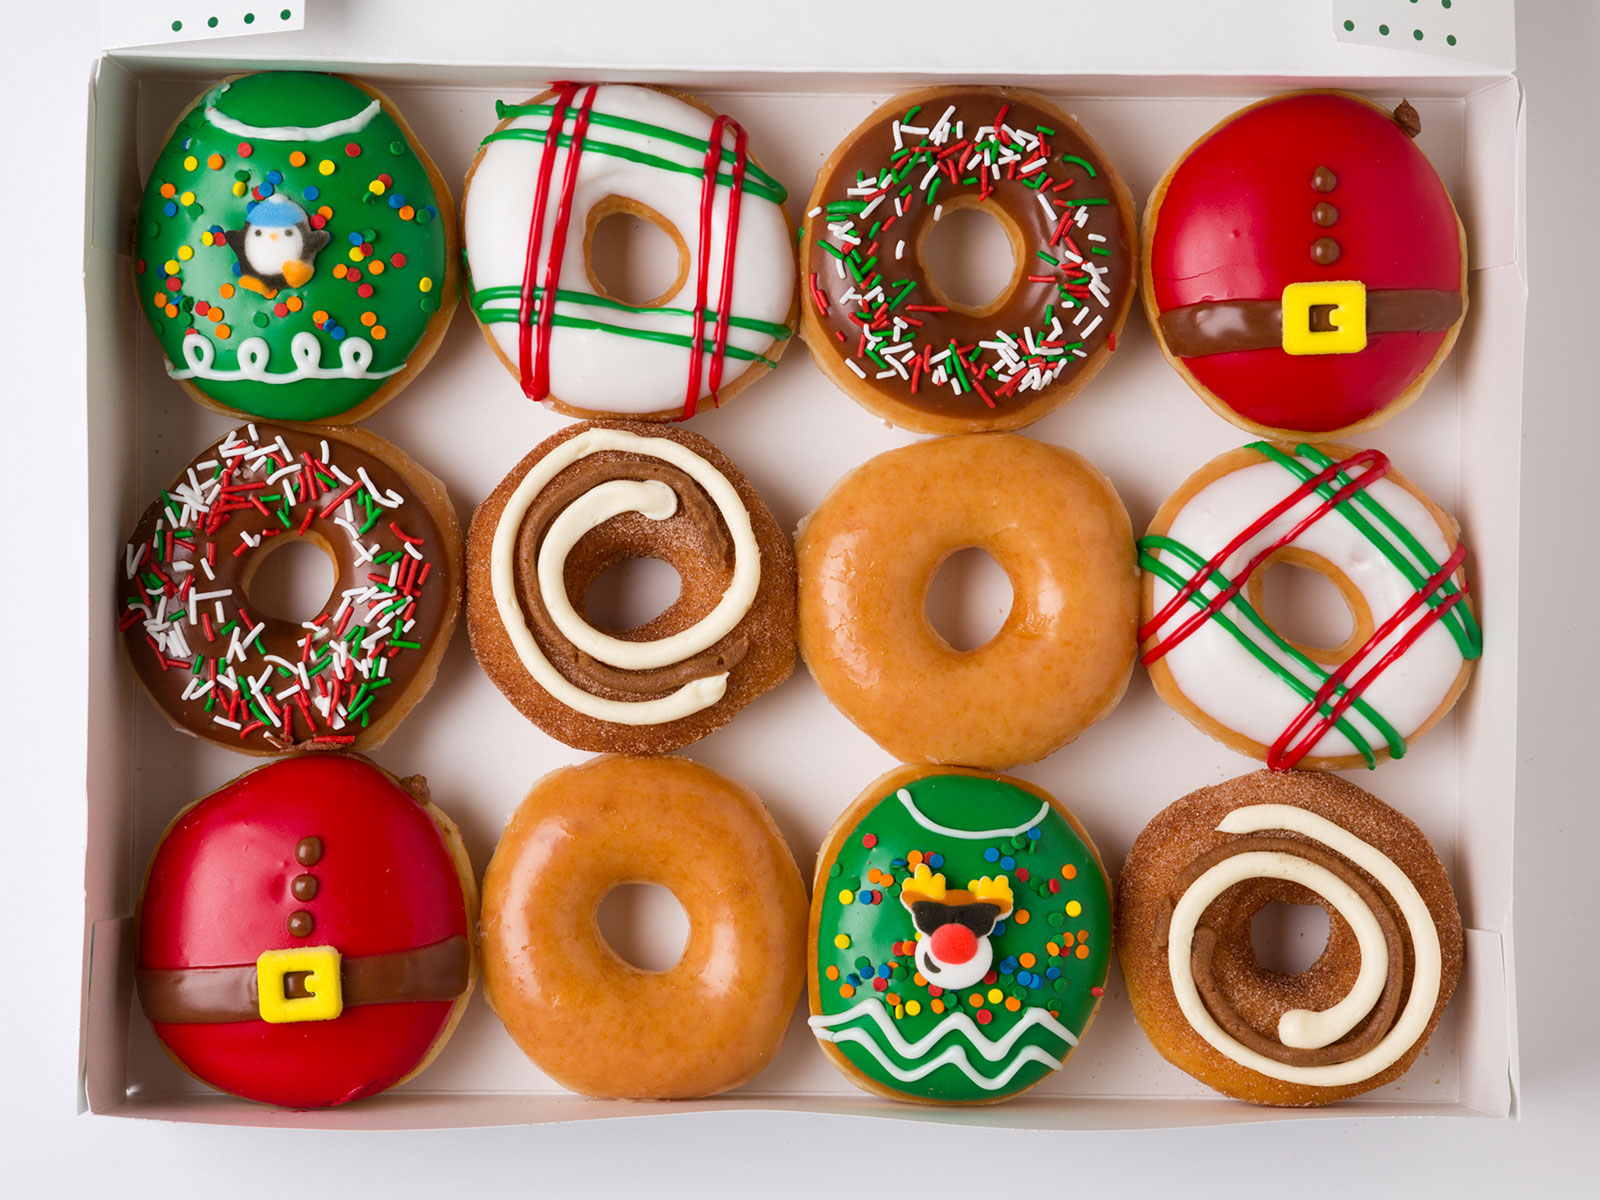 Krispy Kreme's Latest Doughnut Is Inspired by Ugly Christmas Sweaters